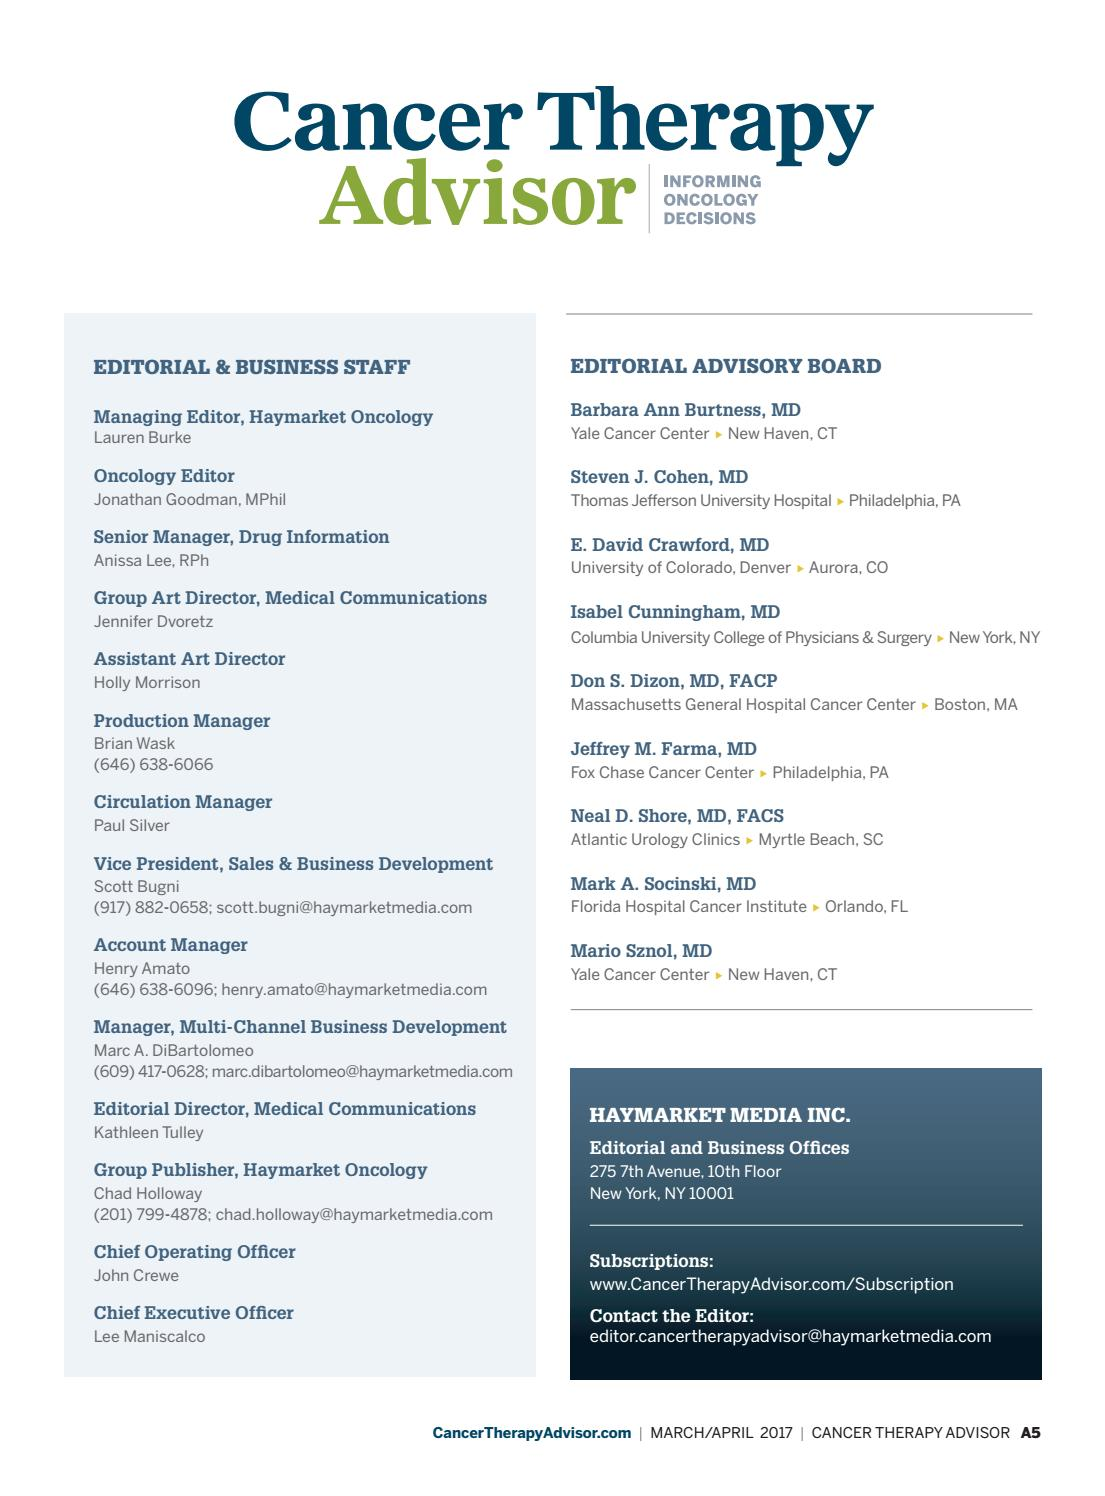 Cancer Therapy Advisor March/April 2017 Issue